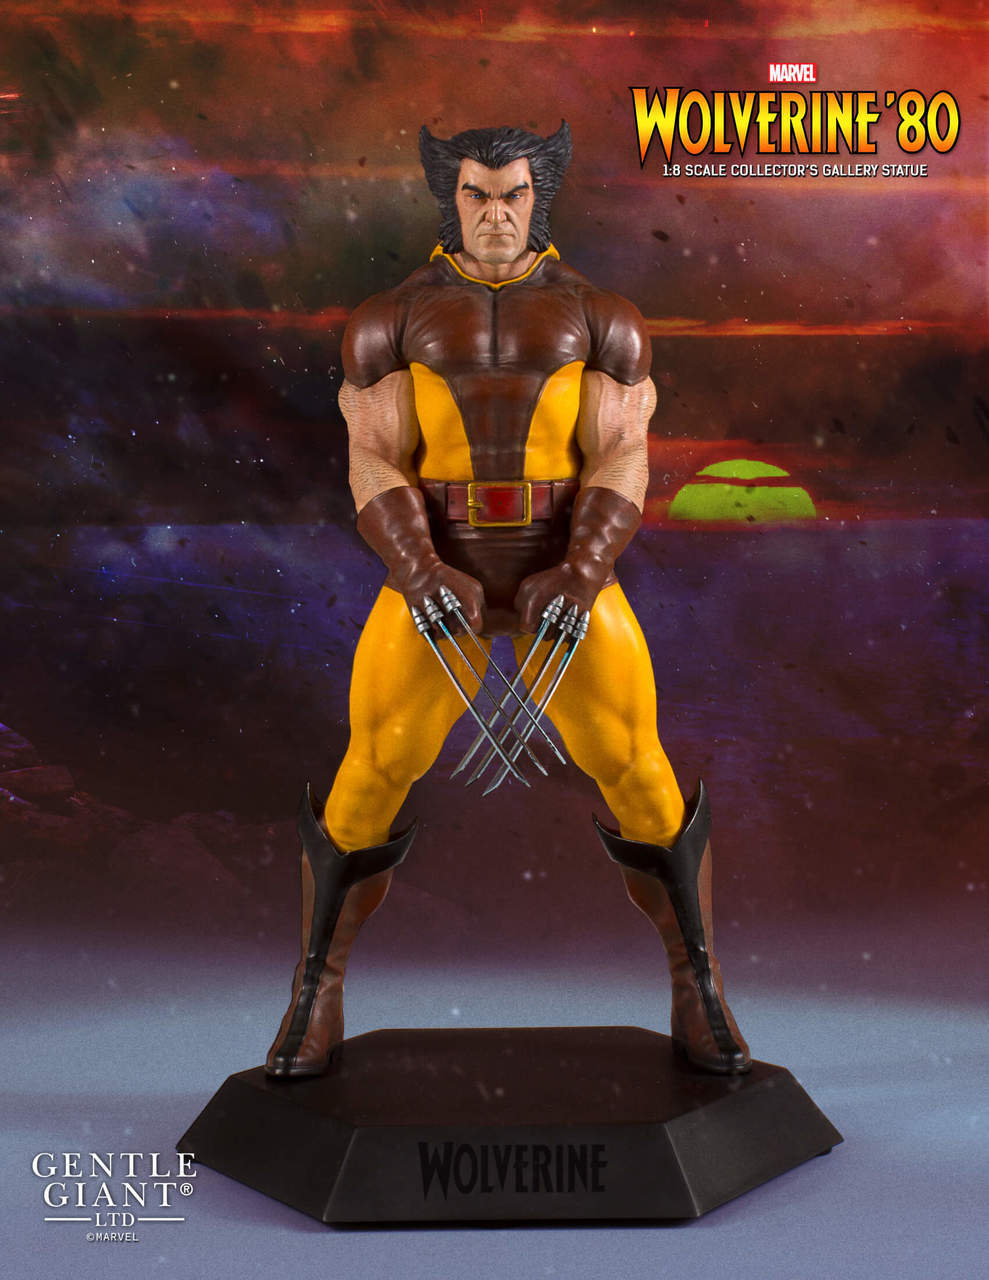 Gentle Giant Marvel Collector's Gallery Wolverine 1980 Statue